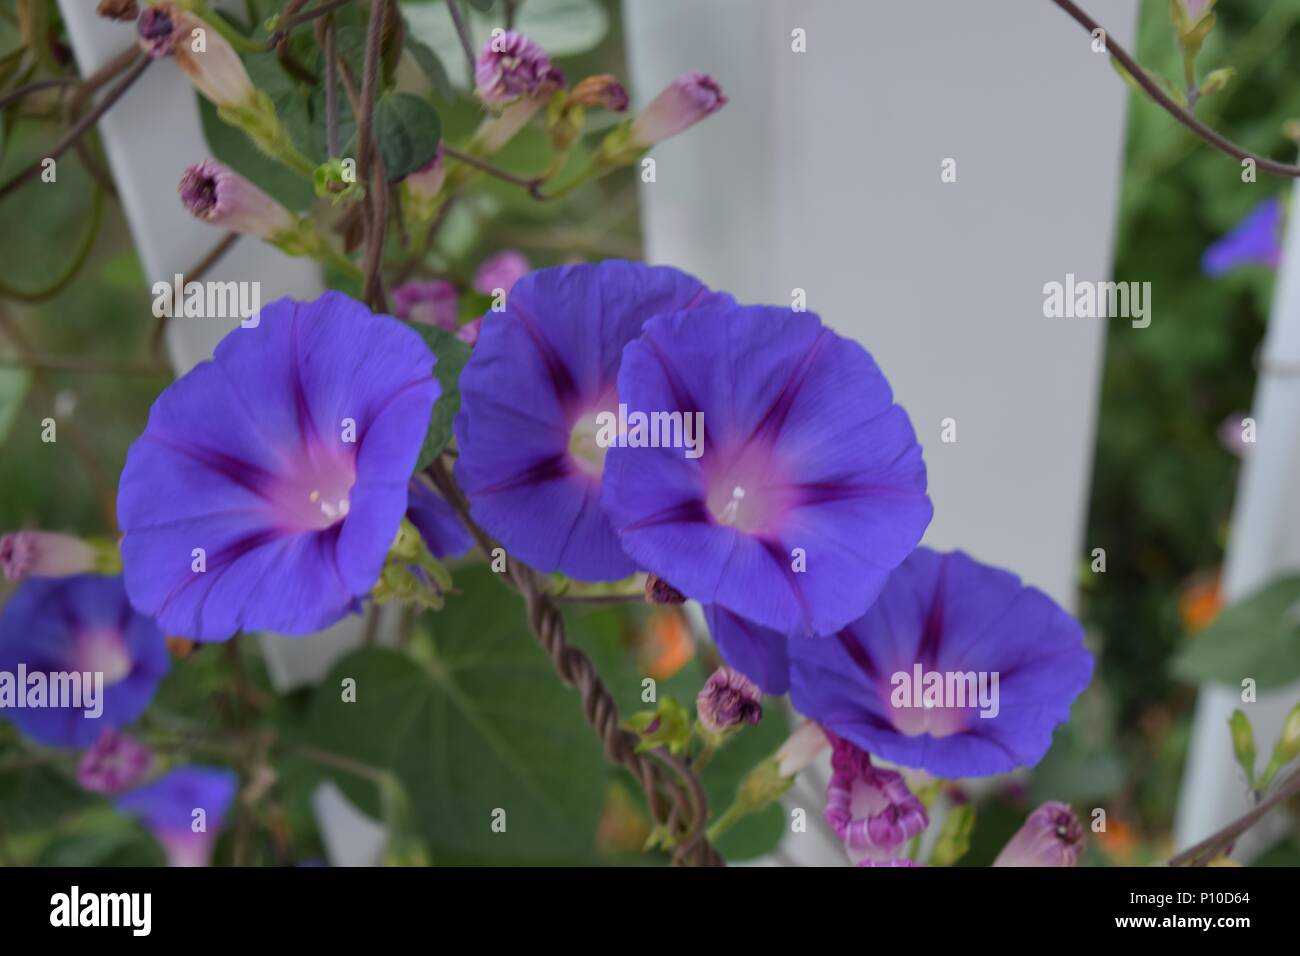 A cluster of morning glories in the early morning. - Stock Image